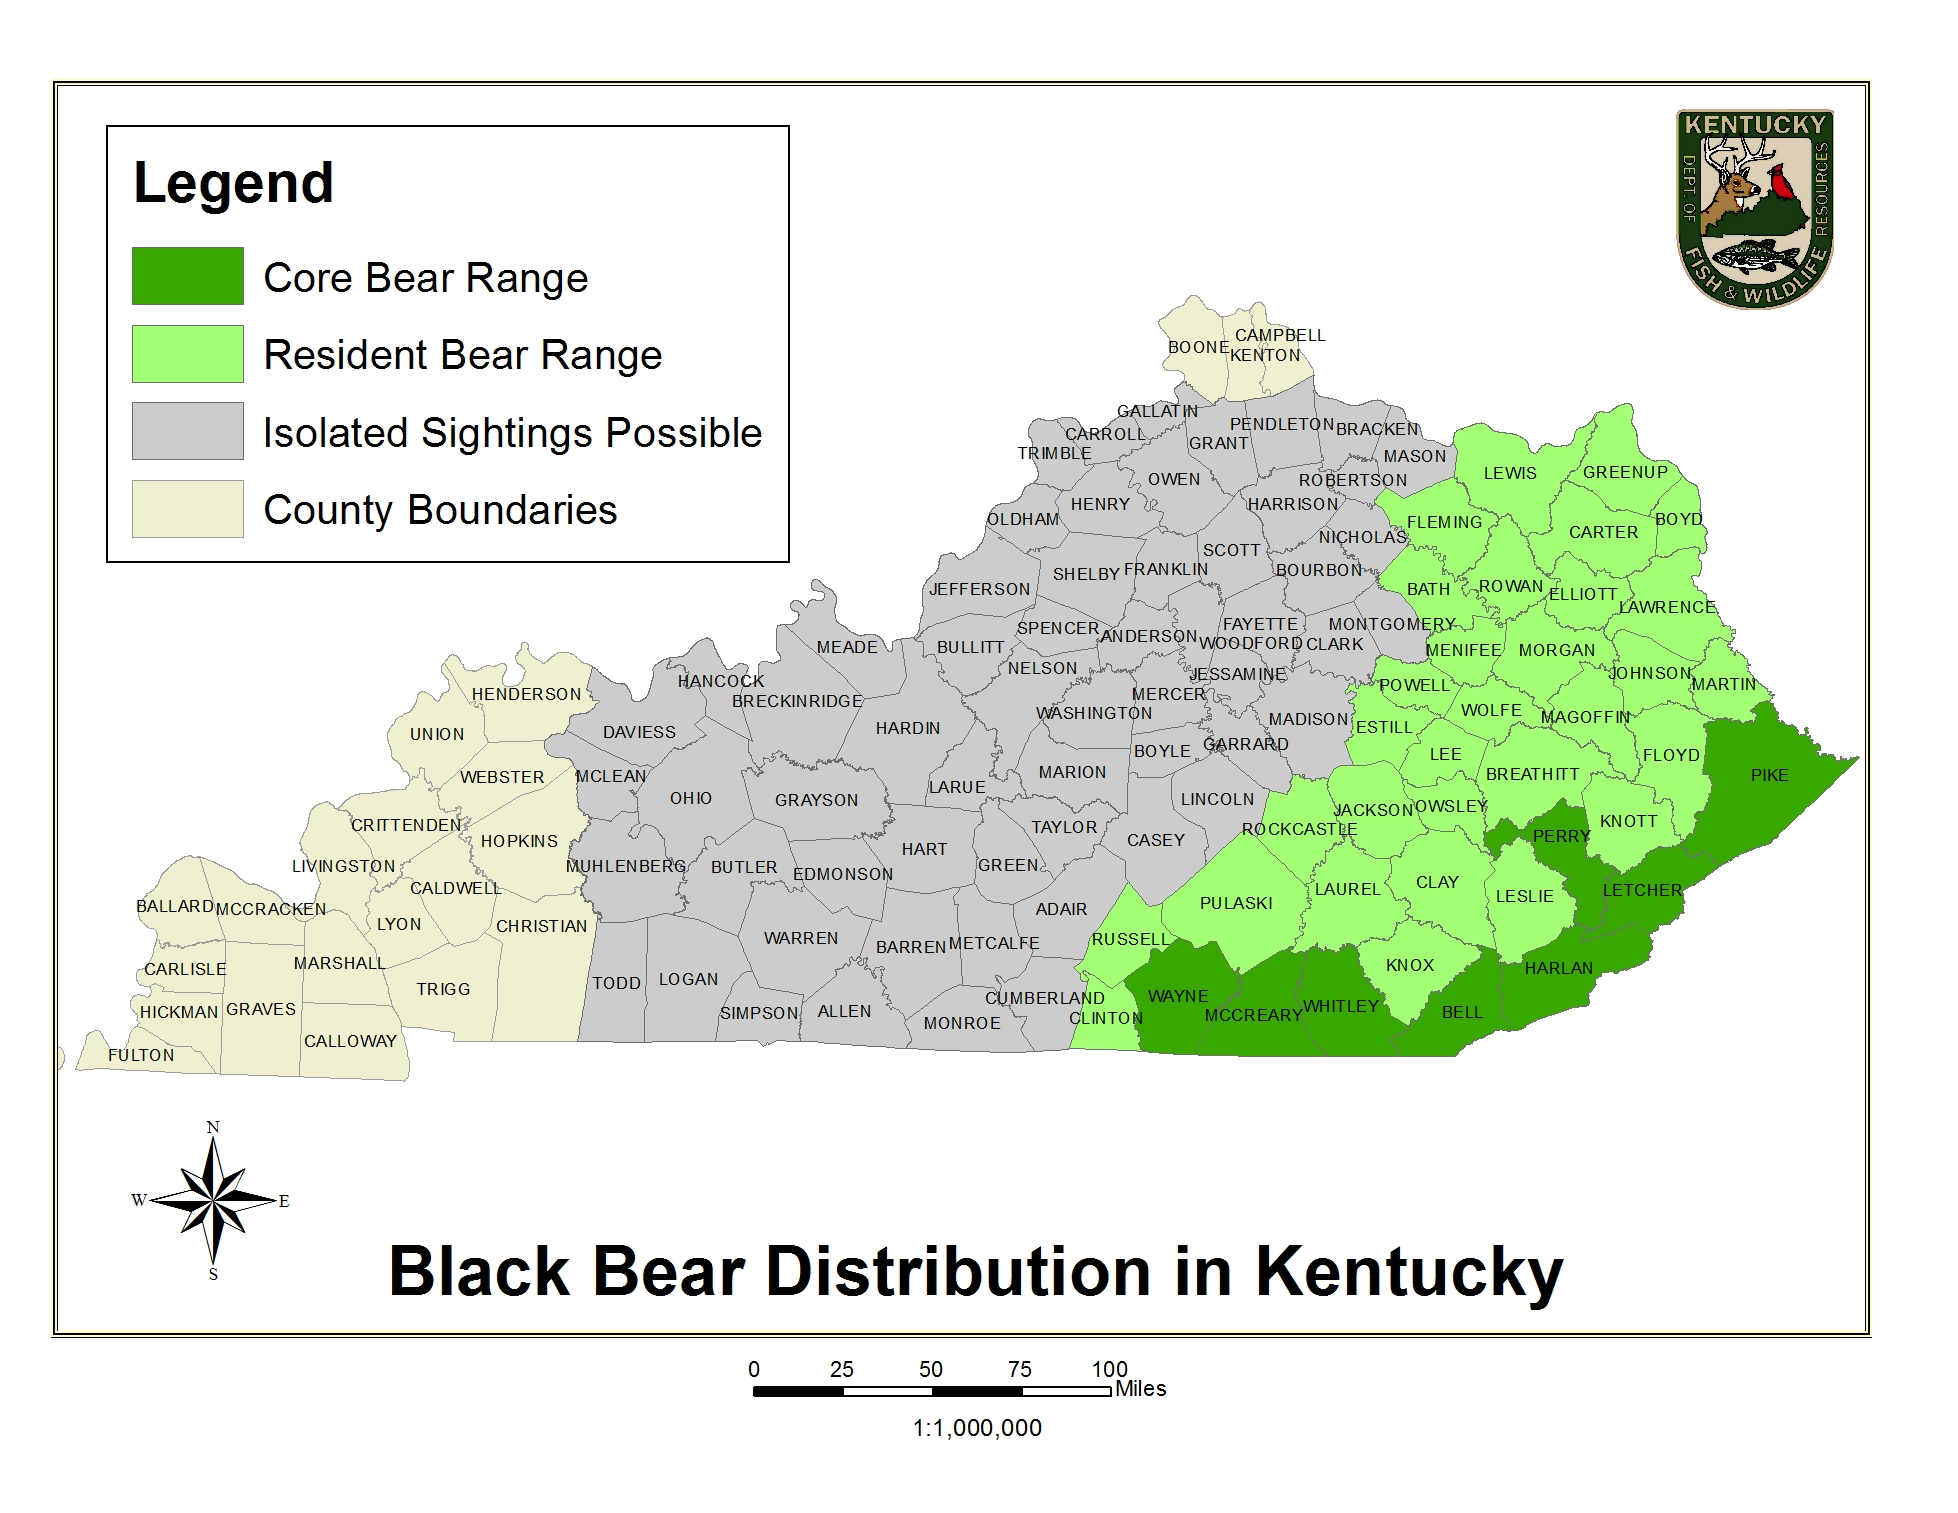 Kentucky Department of Fish & Wildlife Black Bears on map of eastern michigan cities, map of east bernstadt ky, map of ky and oh, map of hospitals in kentucky, map of eastern ohio cities, map of central ky, map of eastern kentucky, map of western ky cities, map of ky regions, map of eastern pa cities, map of perry county ky, map of downtown paducah ky, map of coal mines in kentucky, map of eastern florida cities, kentucky map with counties and cities, map of florence ky area, map of eastern oregon cities, map of lexington ky and surrounding areas, map of eastern wa cities, map of eastern nc cities,